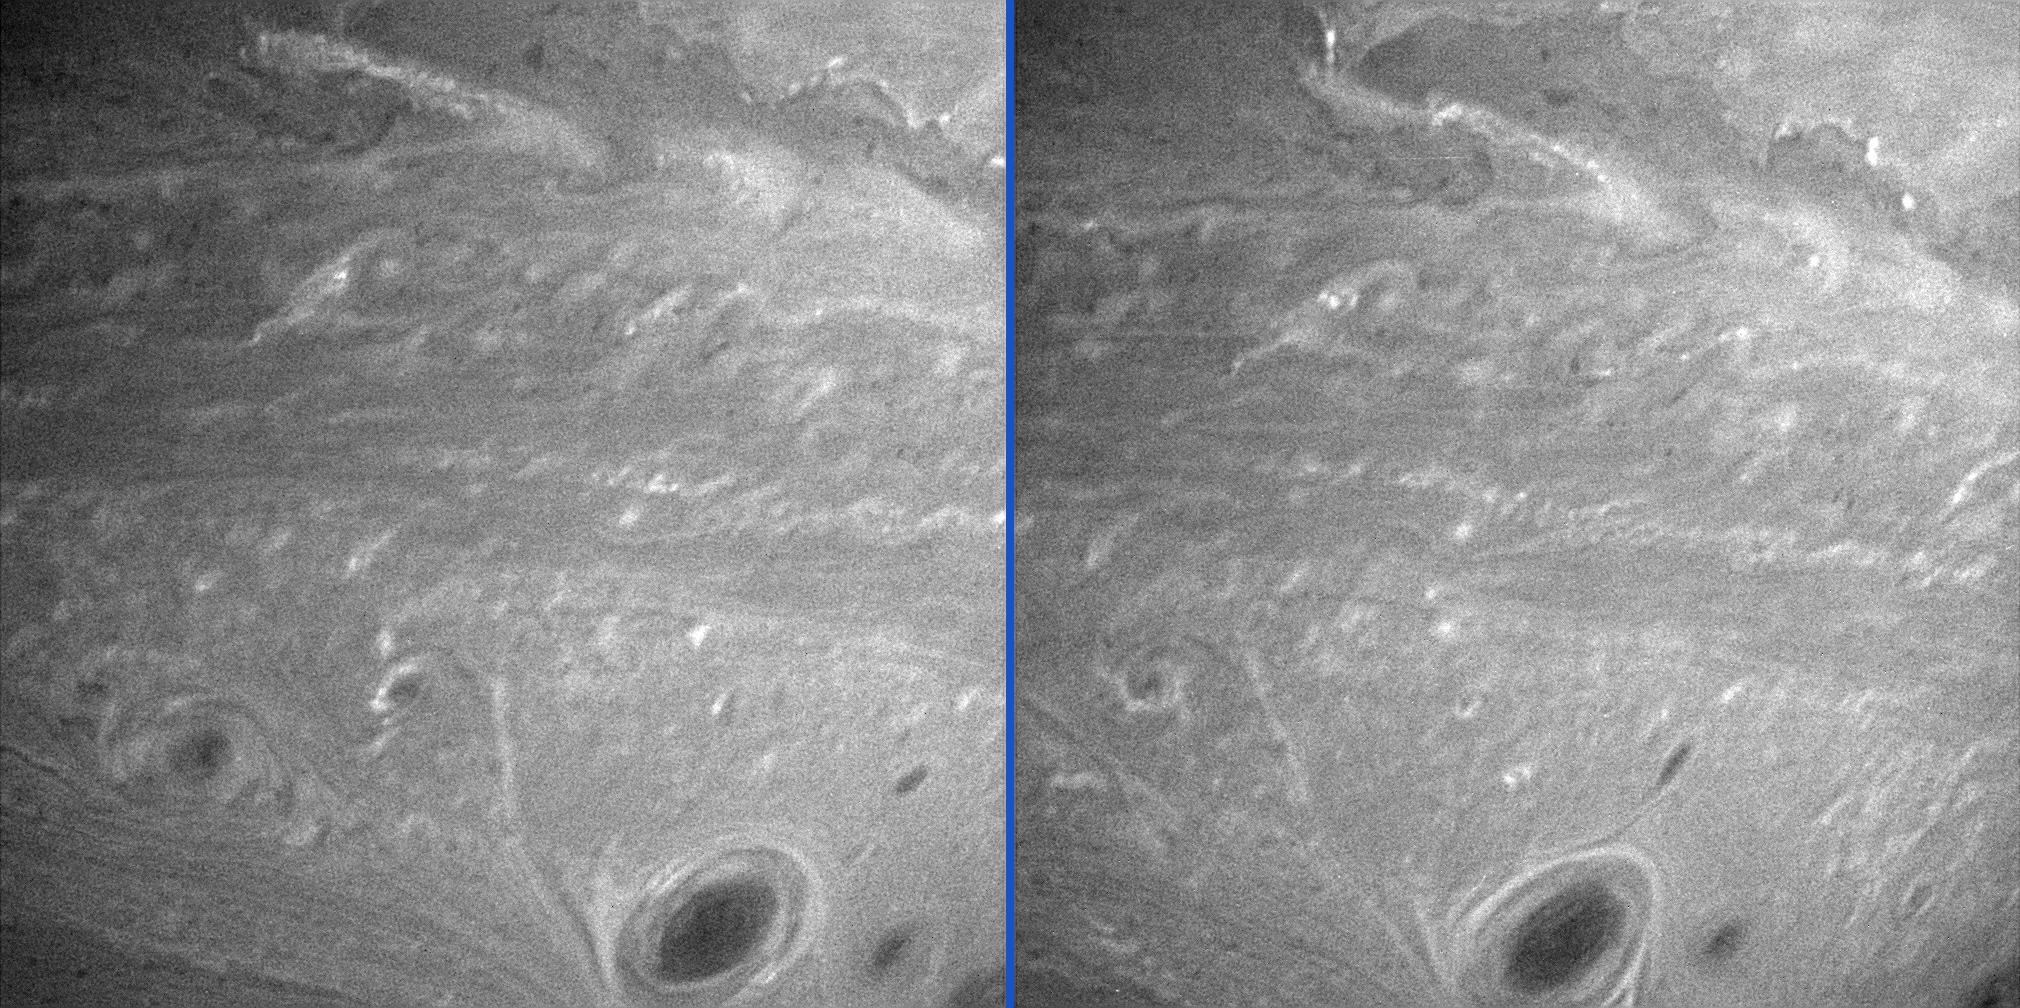 Vortices mingle amidst other turbulent motions in Saturn's atmosphere in these two comparison images